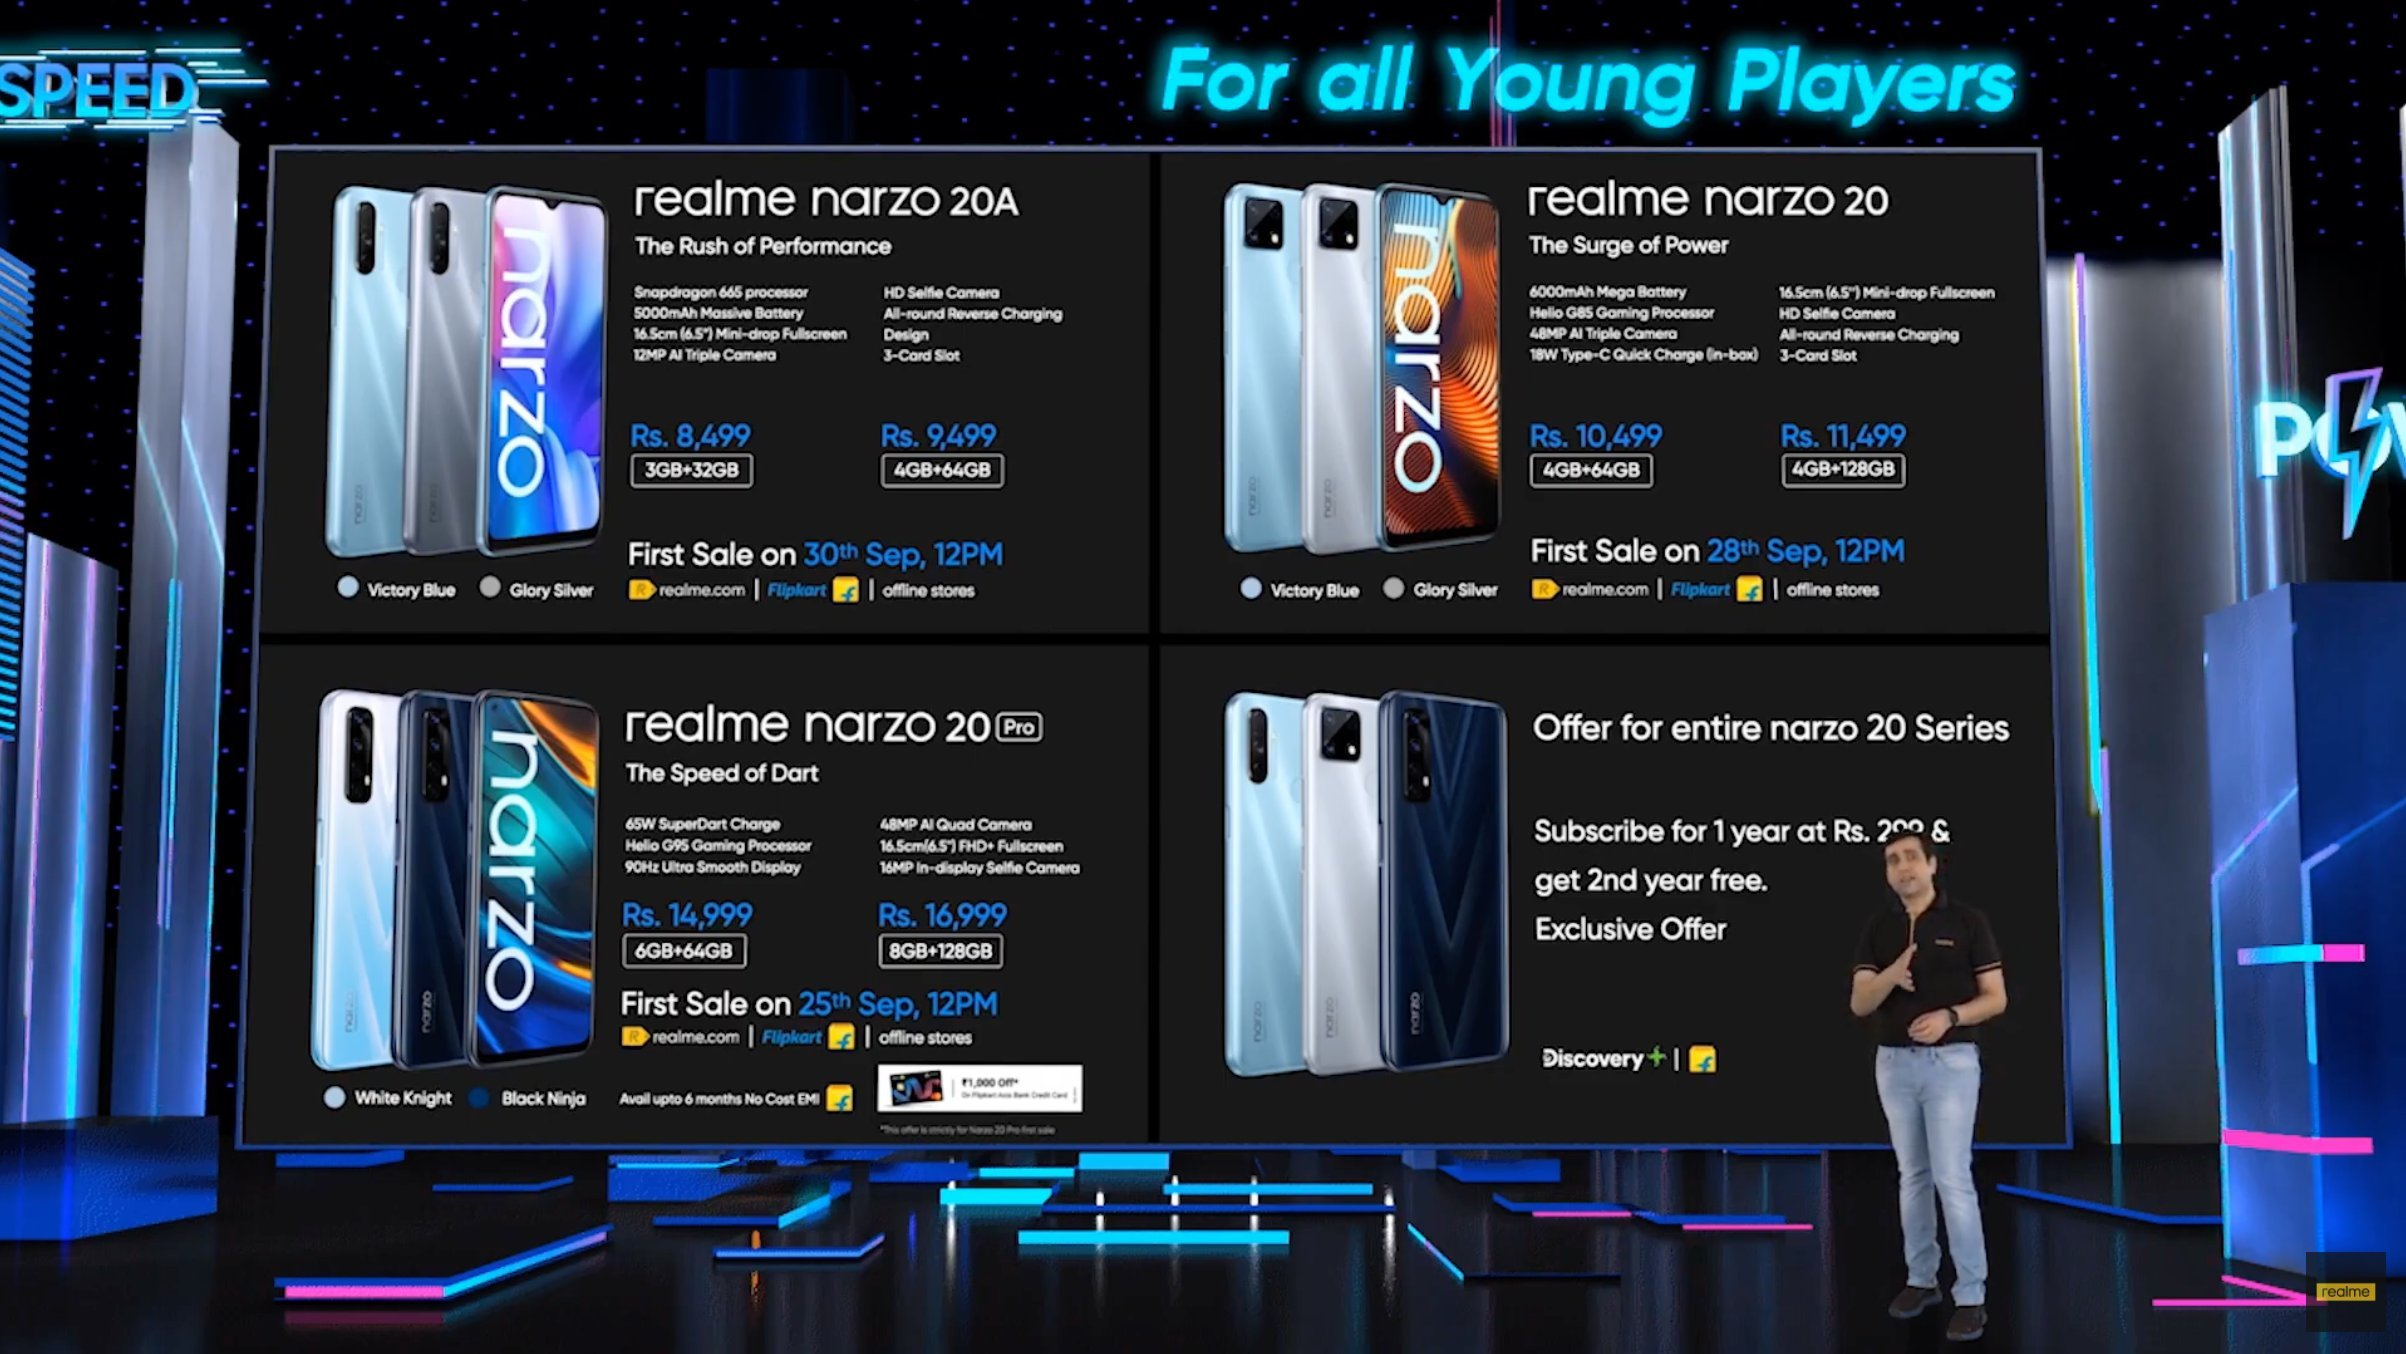 Everything You Need to Know About the Realme Narzo 20 Series